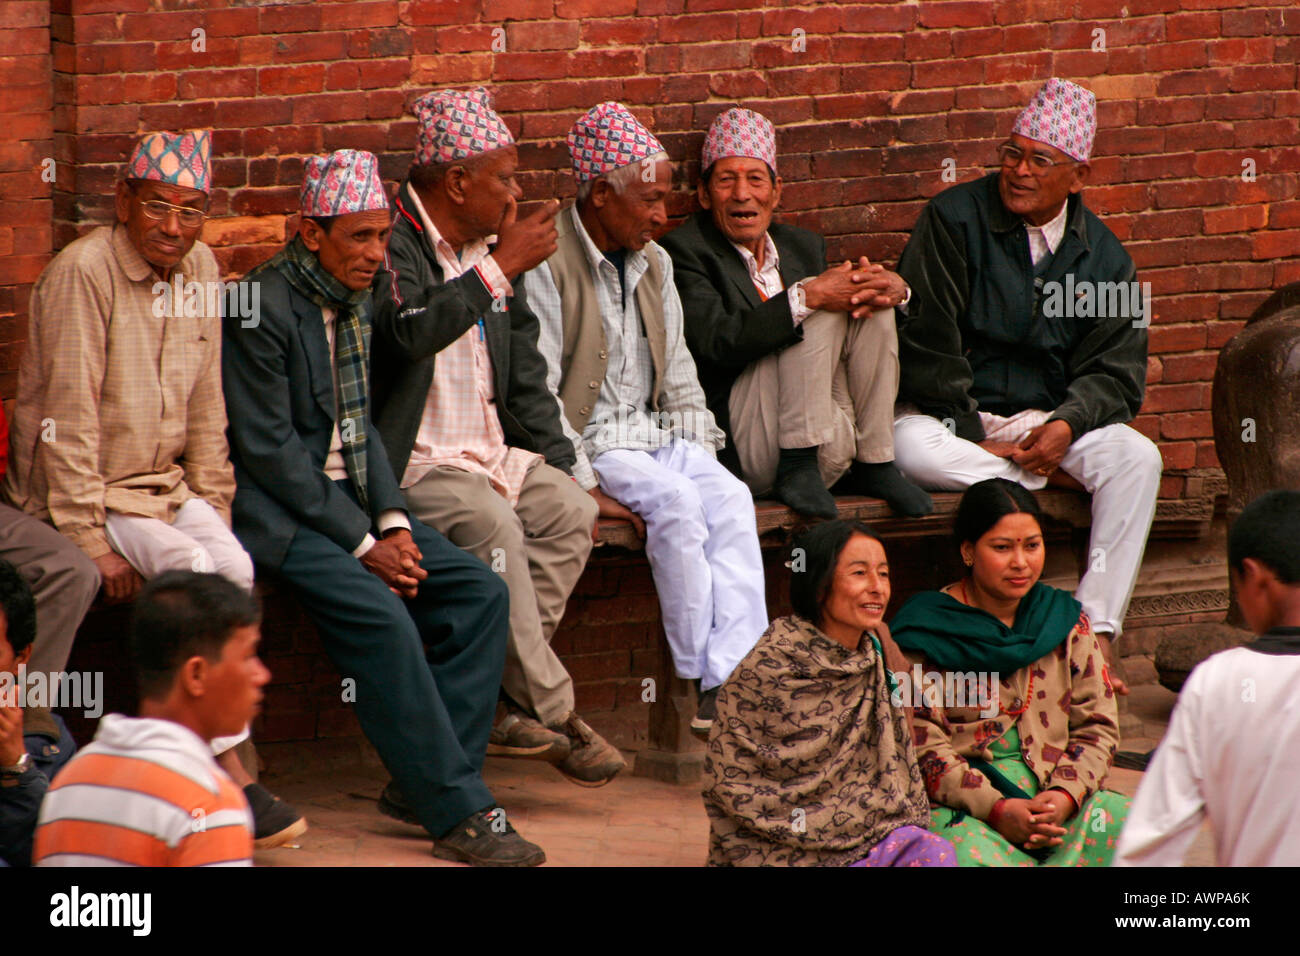 Six elderly gentlemen wearing typical Nepalese head coverings called 'topi' sitting on a bench chatting, - Stock Image